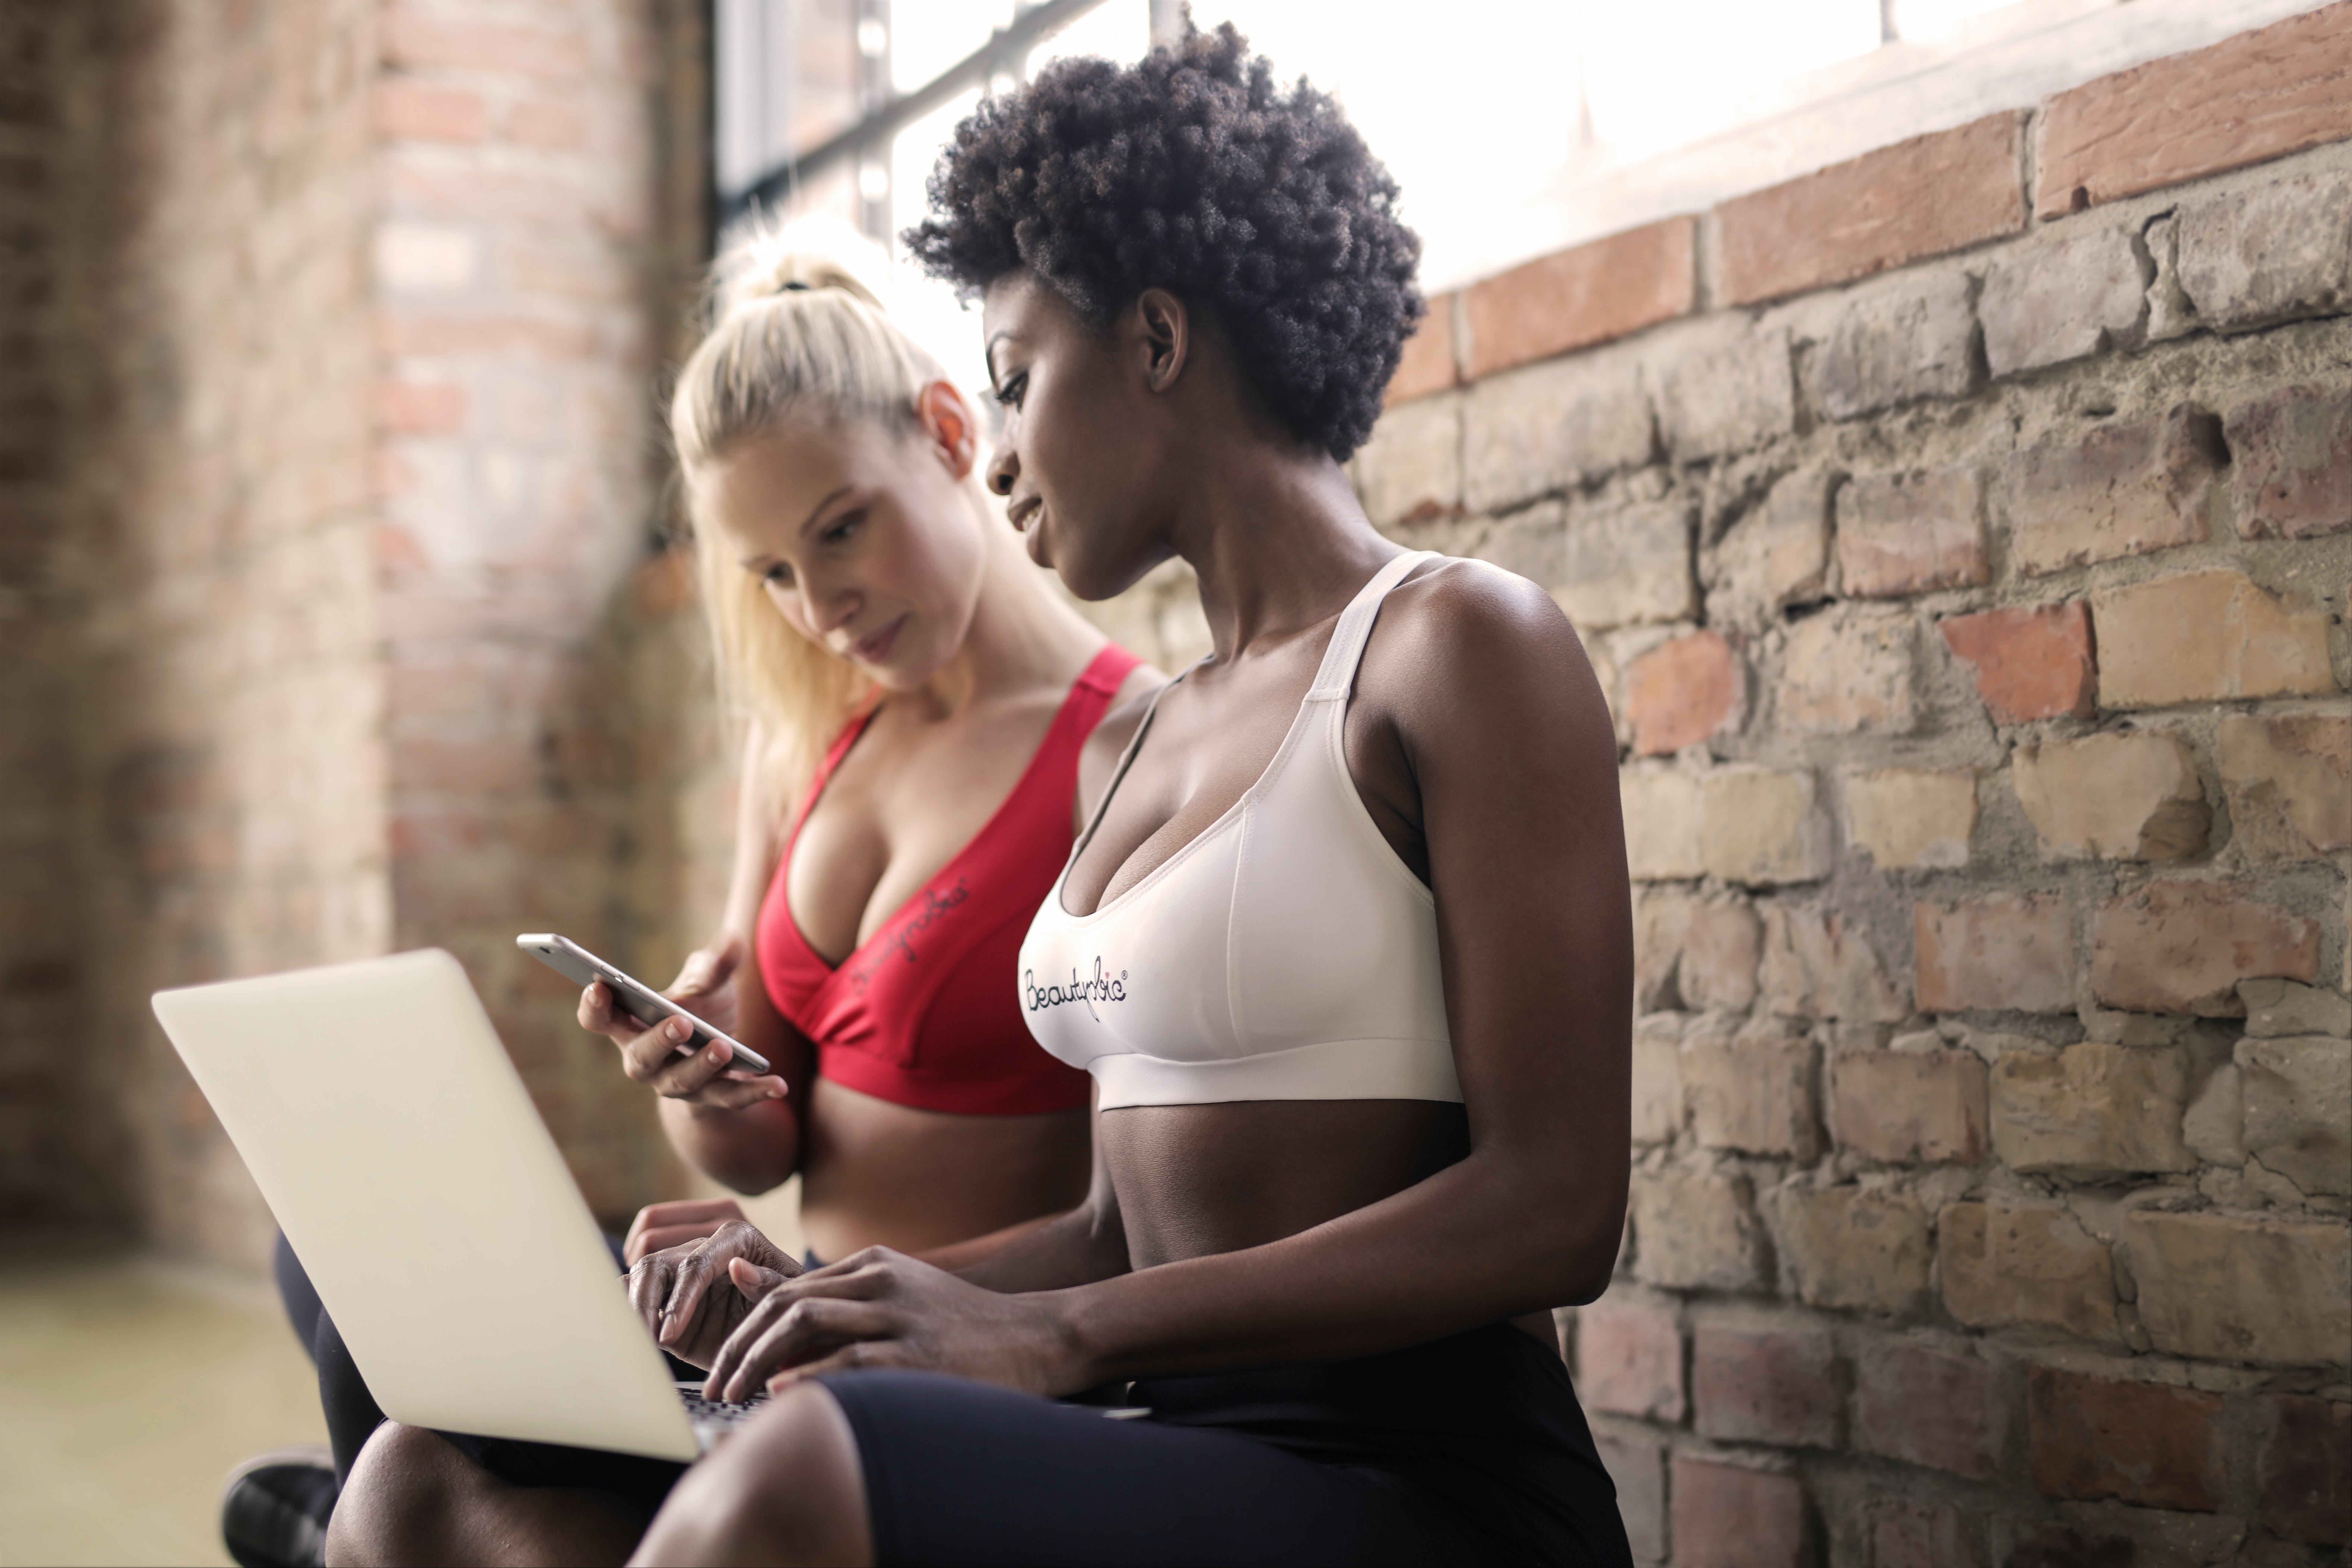 Two Woman Wearing Red and White Sports Bras